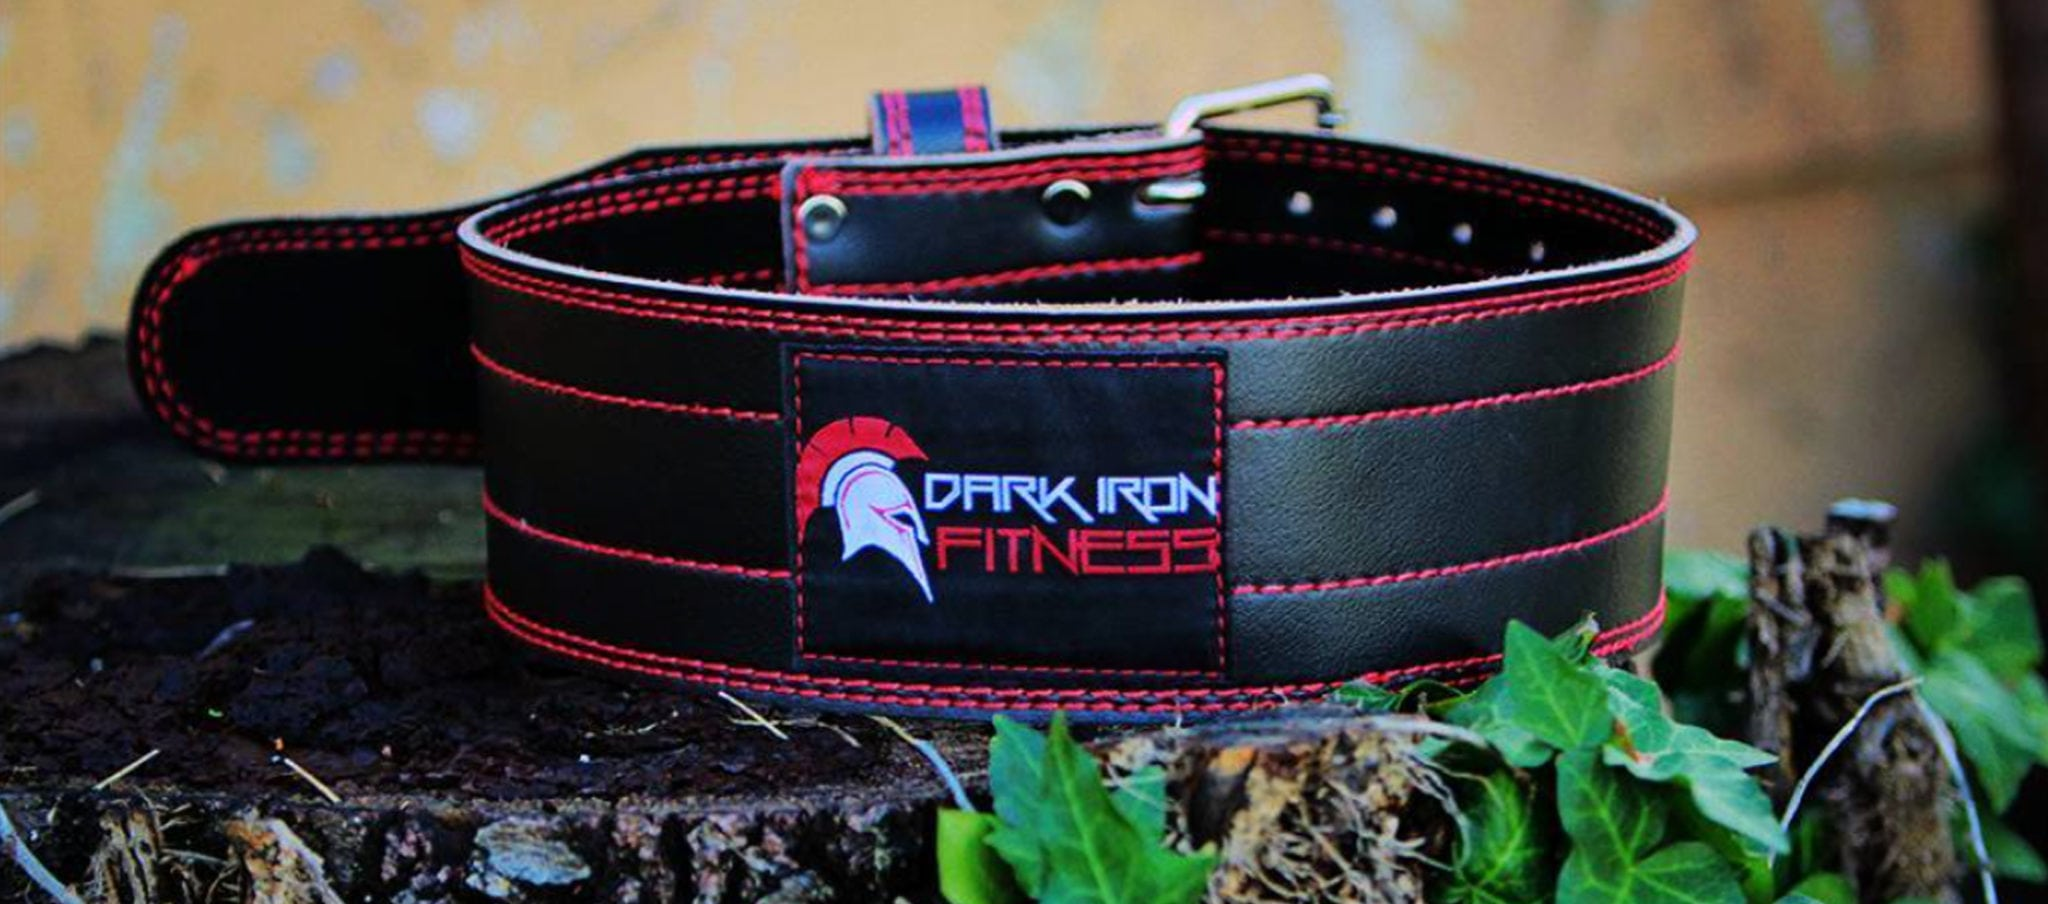 Become Optimally Fit at Home - Dark Iron Fitness Weightlifting Belt